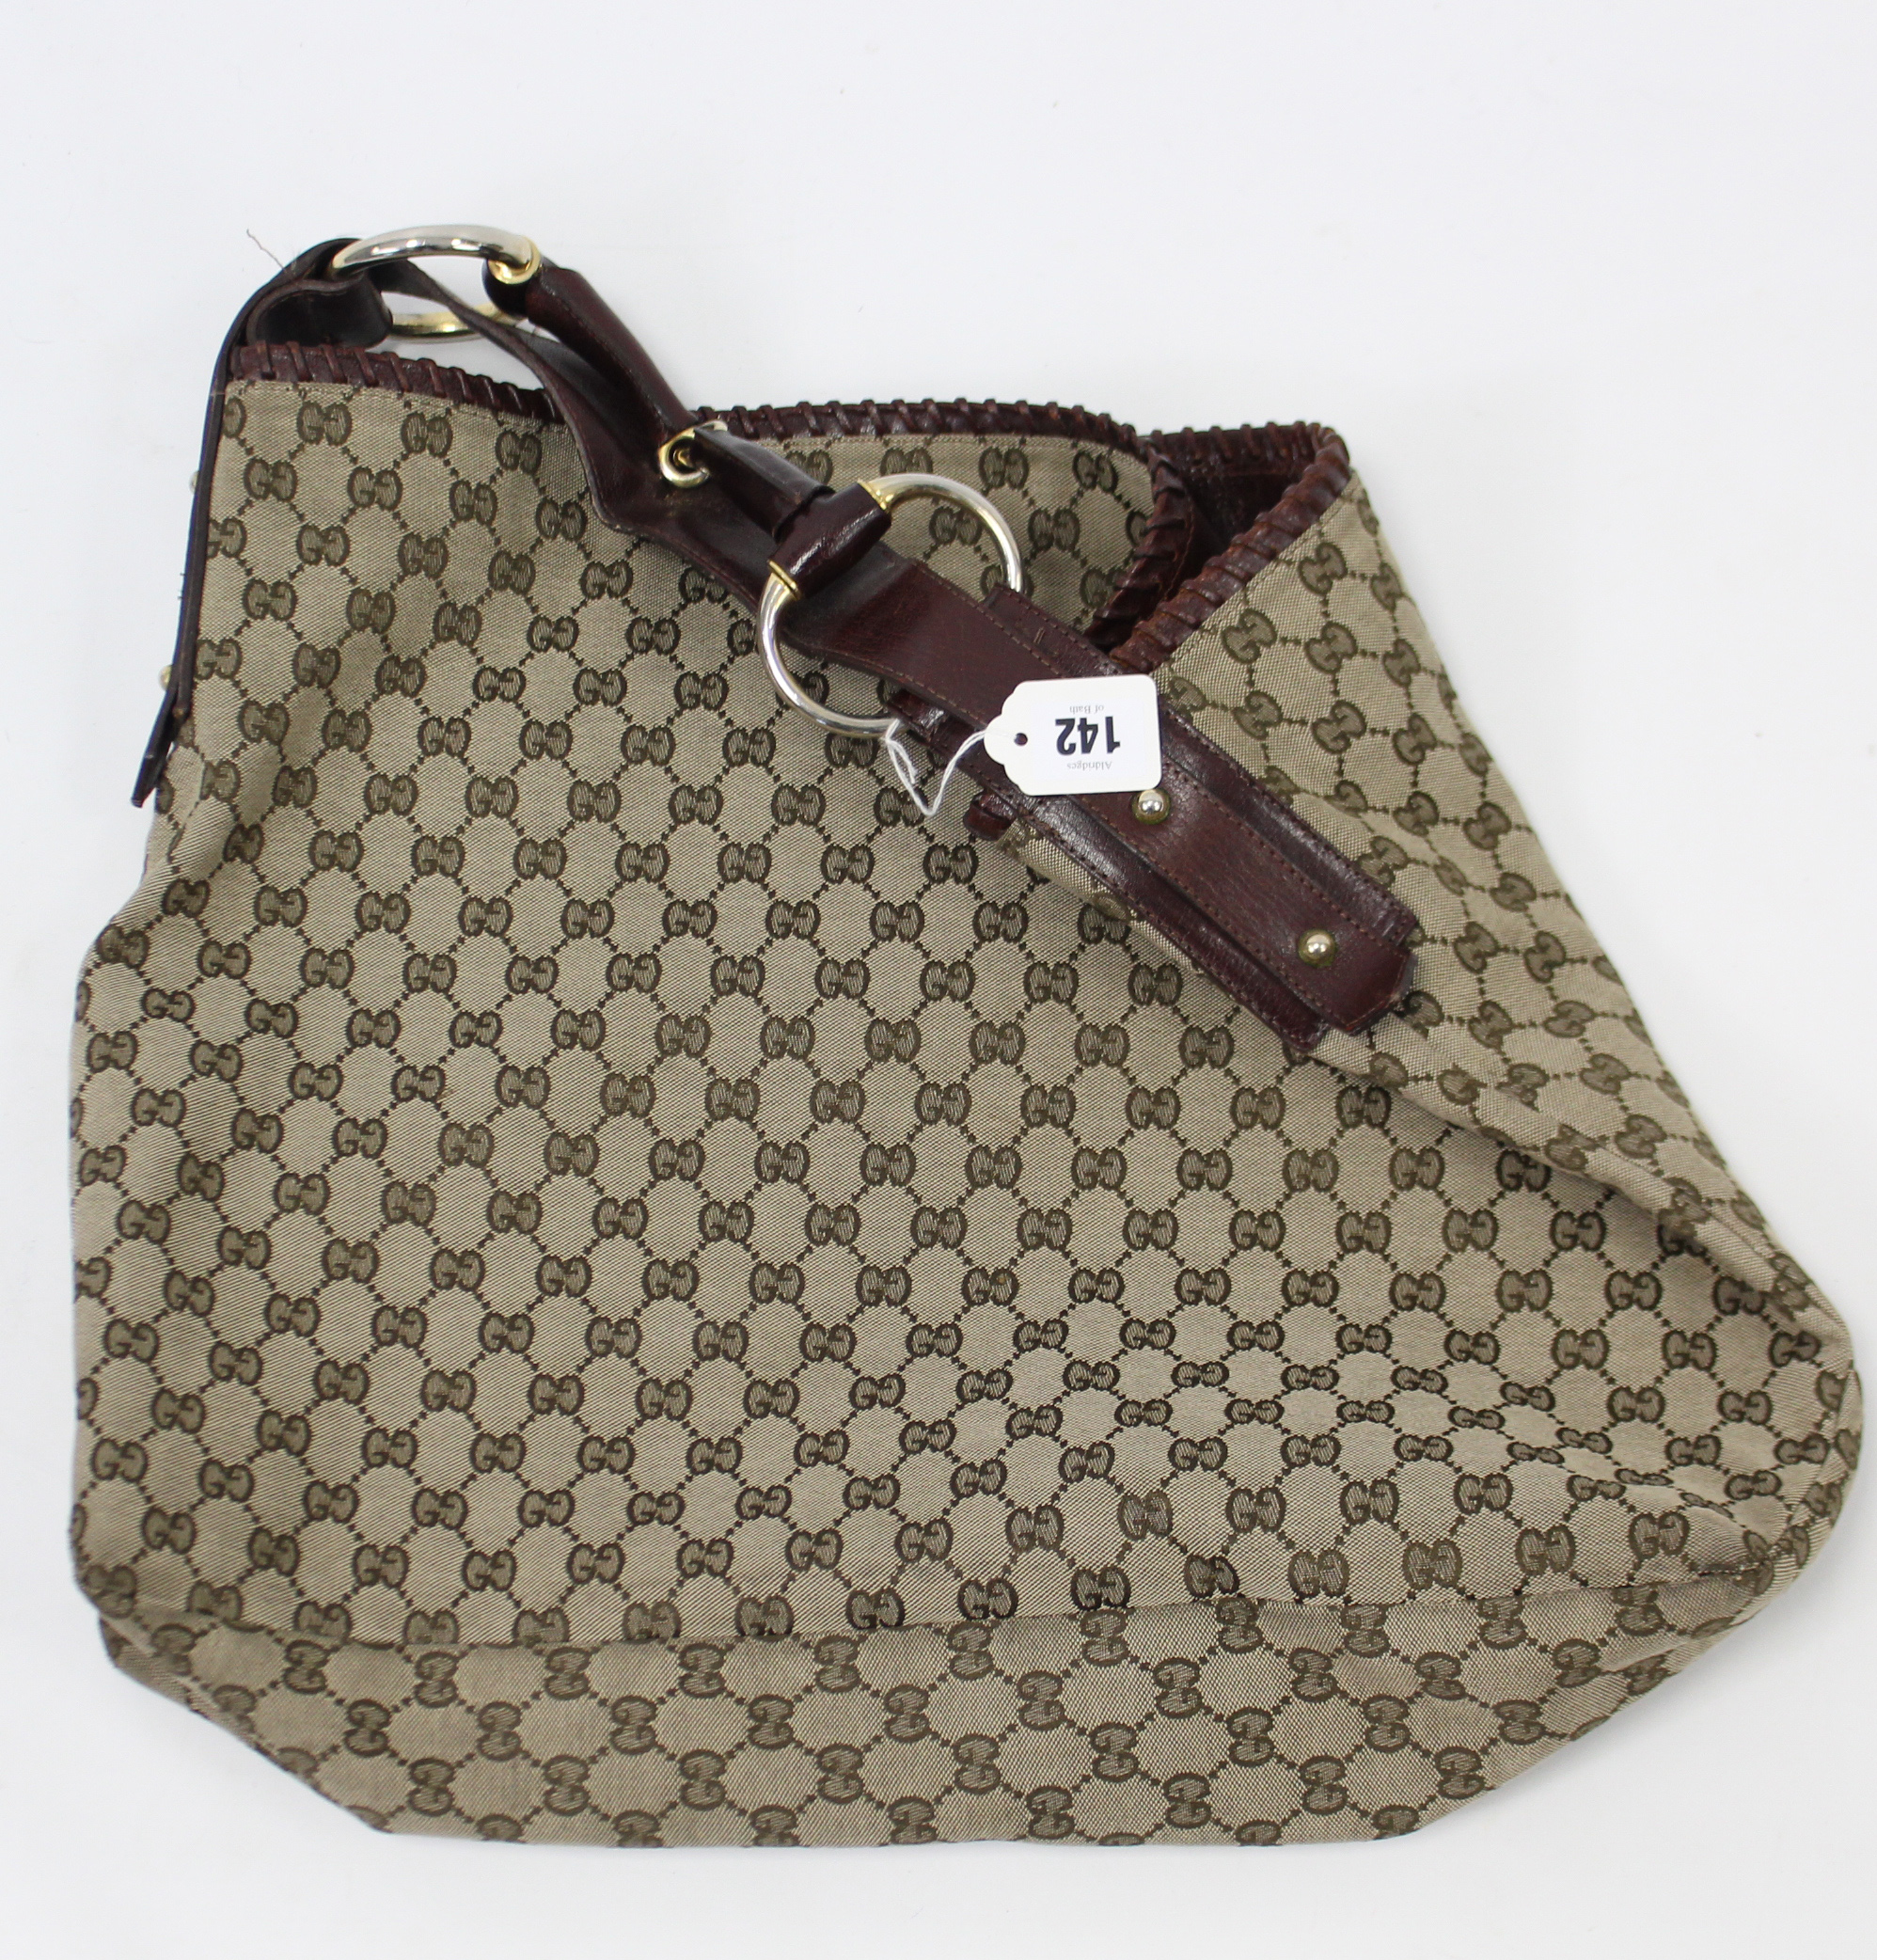 Lot 142 - A Gucci ladies' handbag.